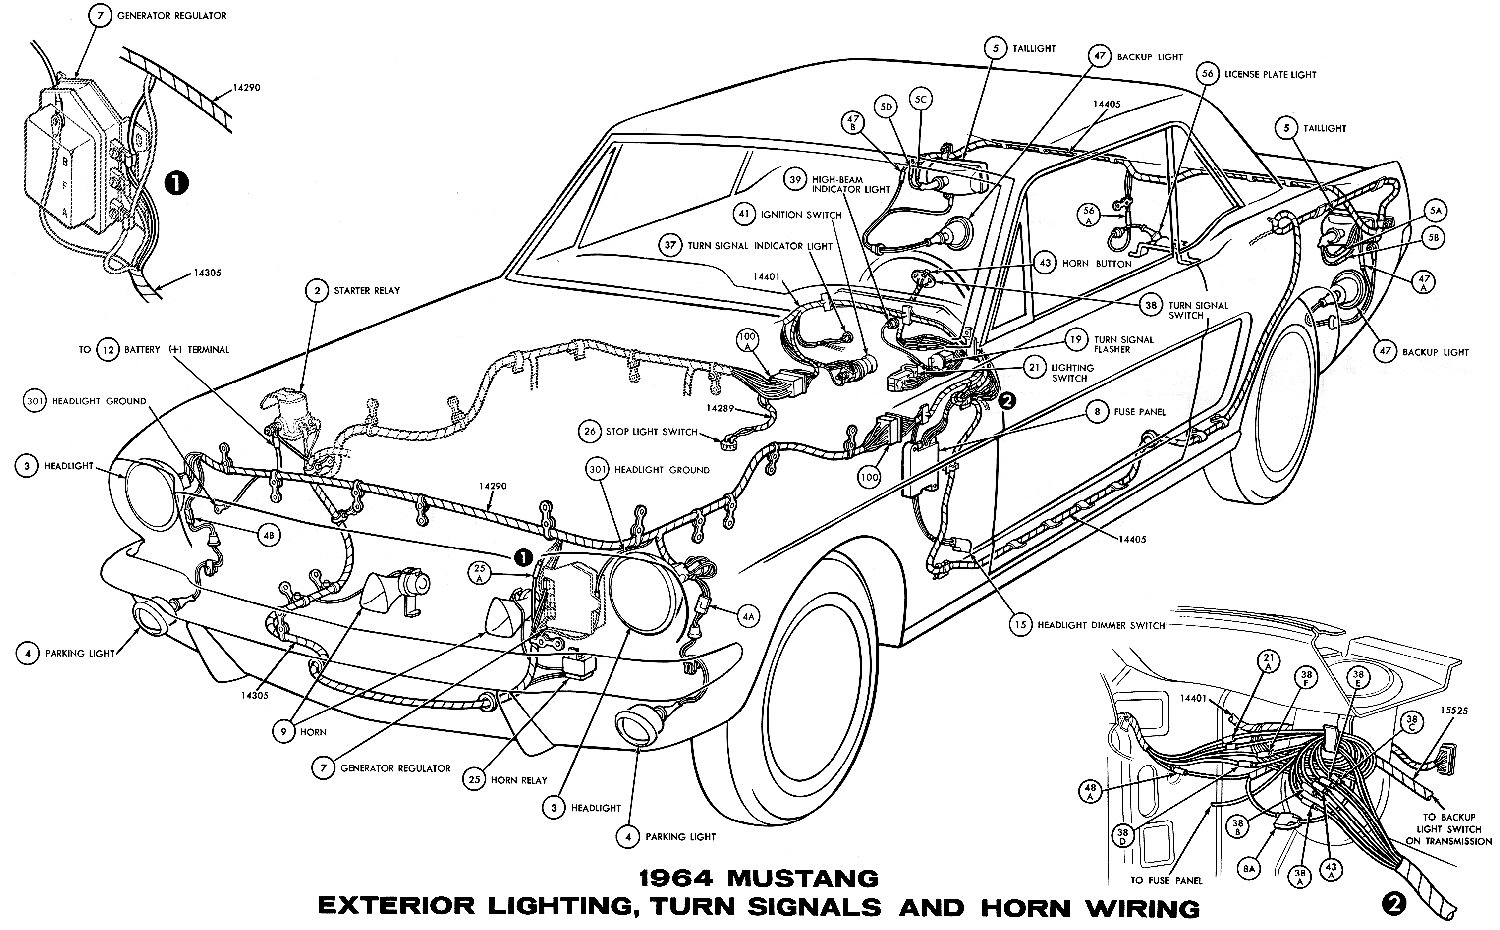 1964h 1964 mustang wiring diagrams average joe restoration 1965 mustang turn signal wiring diagram at crackthecode.co